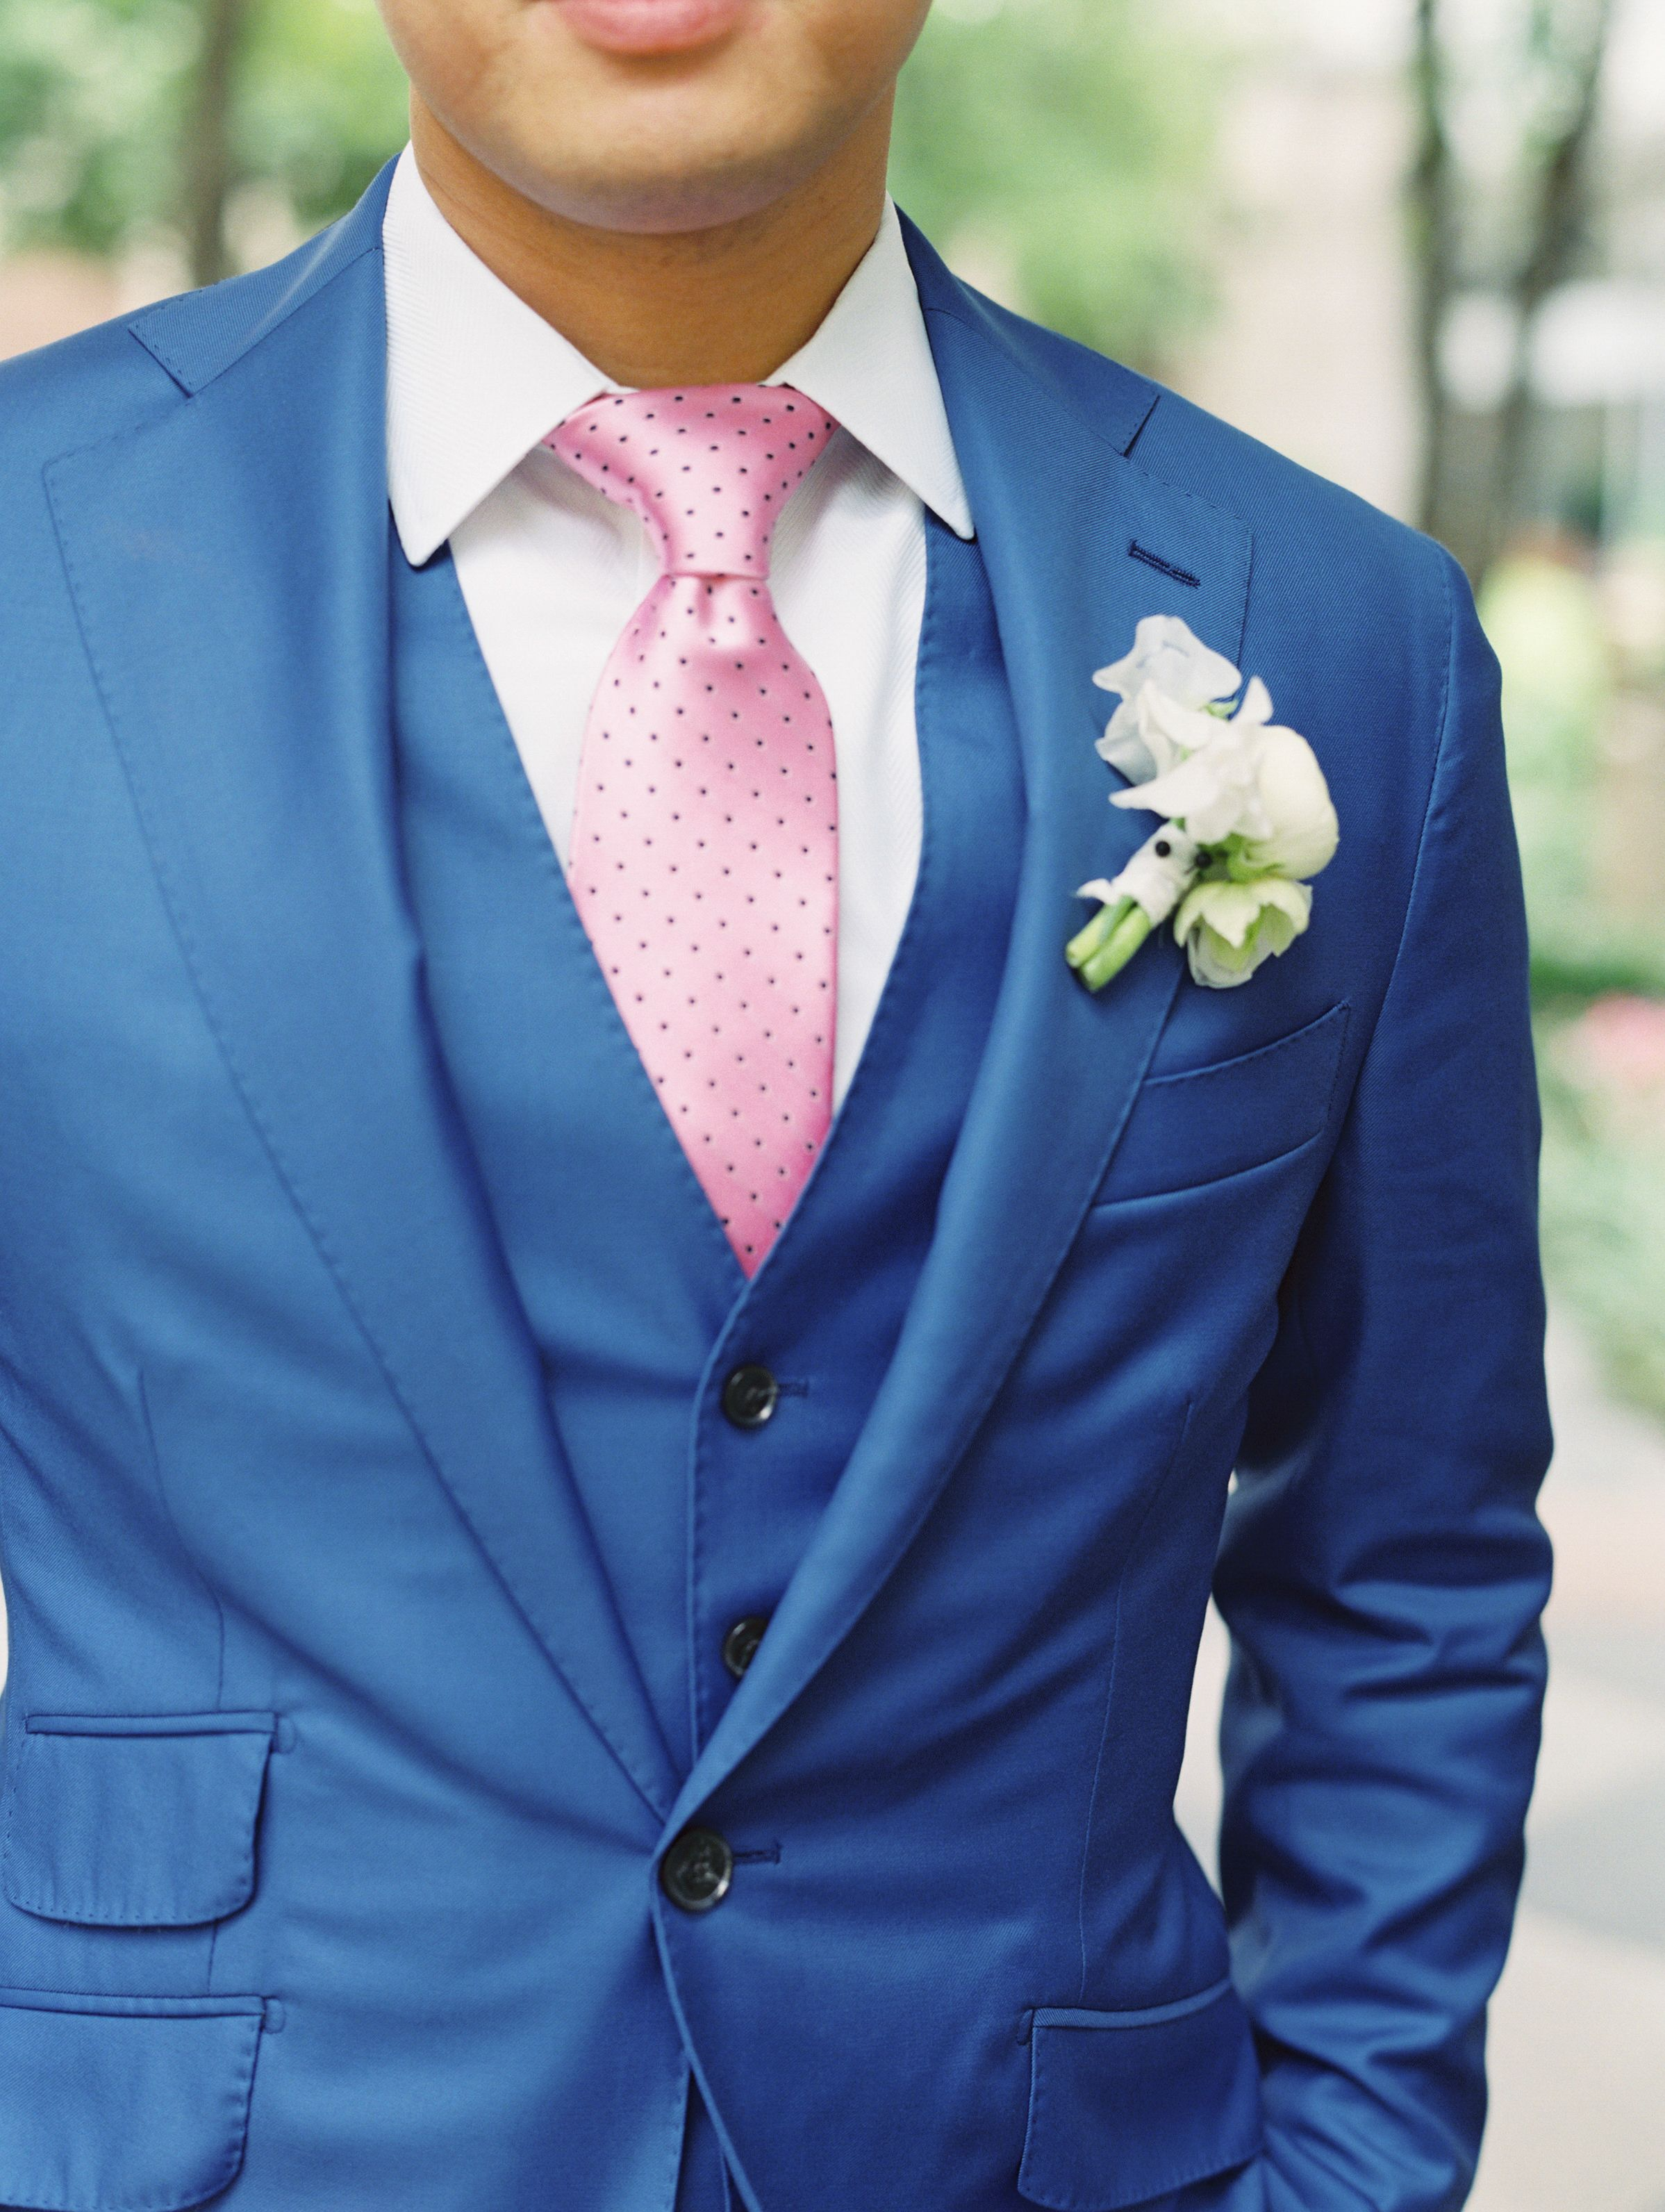 Exelent Suit Hire For Weddings Elaboration - All Wedding Dresses ...